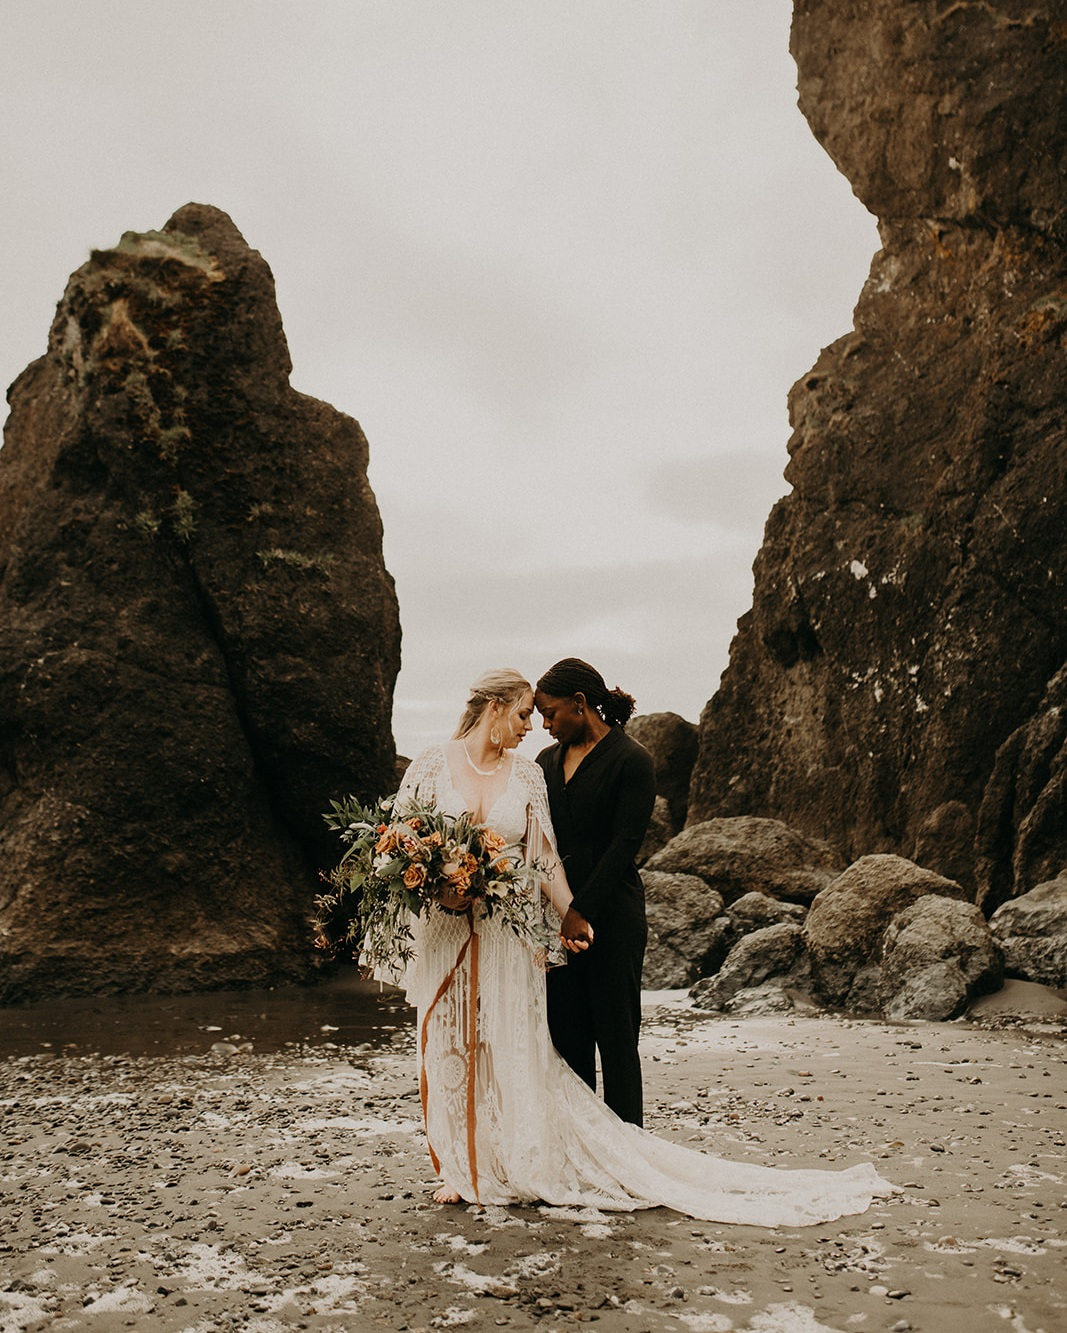 Ruby_Beach_Styled_Elopement_-_Run_Away_with_Me_Elopement_Collective_-_Kamra_Fuller_Photography_-_First_Look-67.jpg